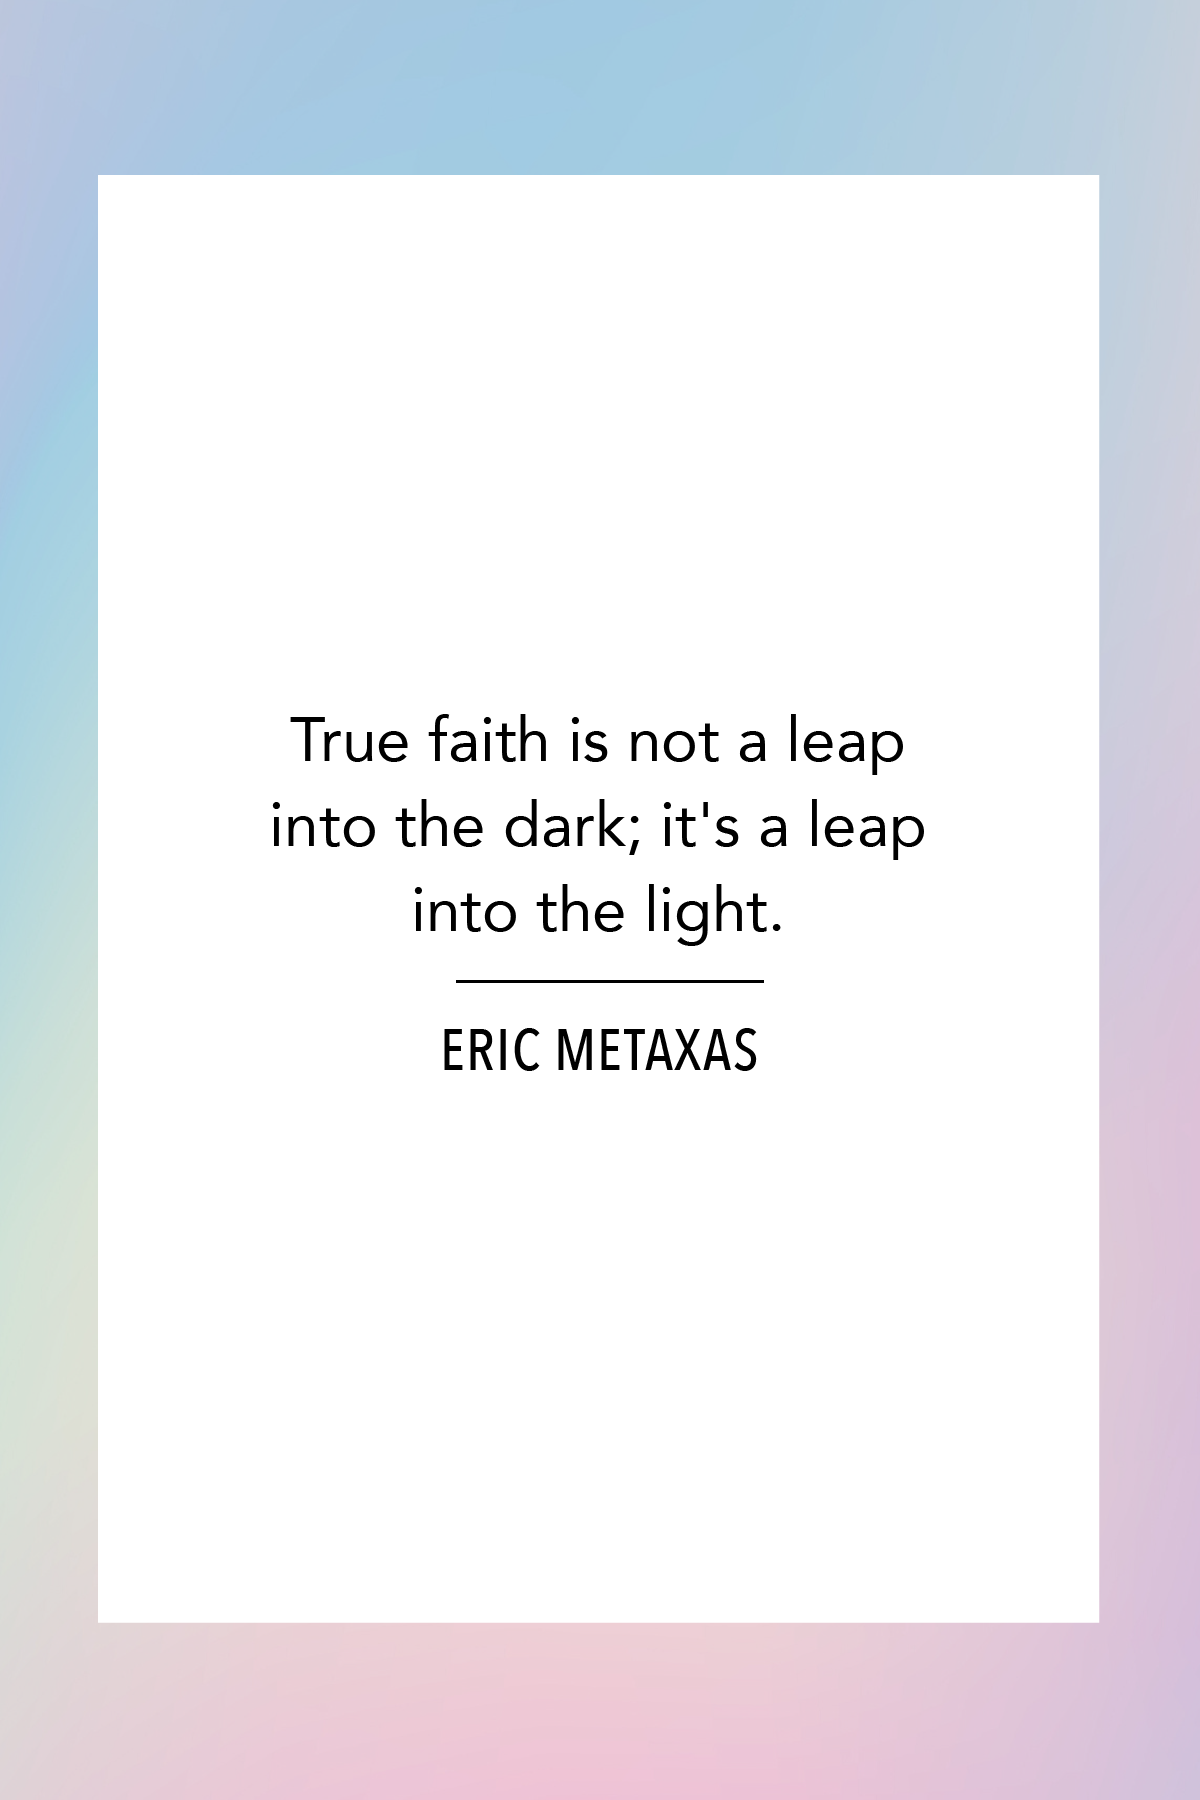 10 Best Faith Quotes - Sayings About Keeping Faith